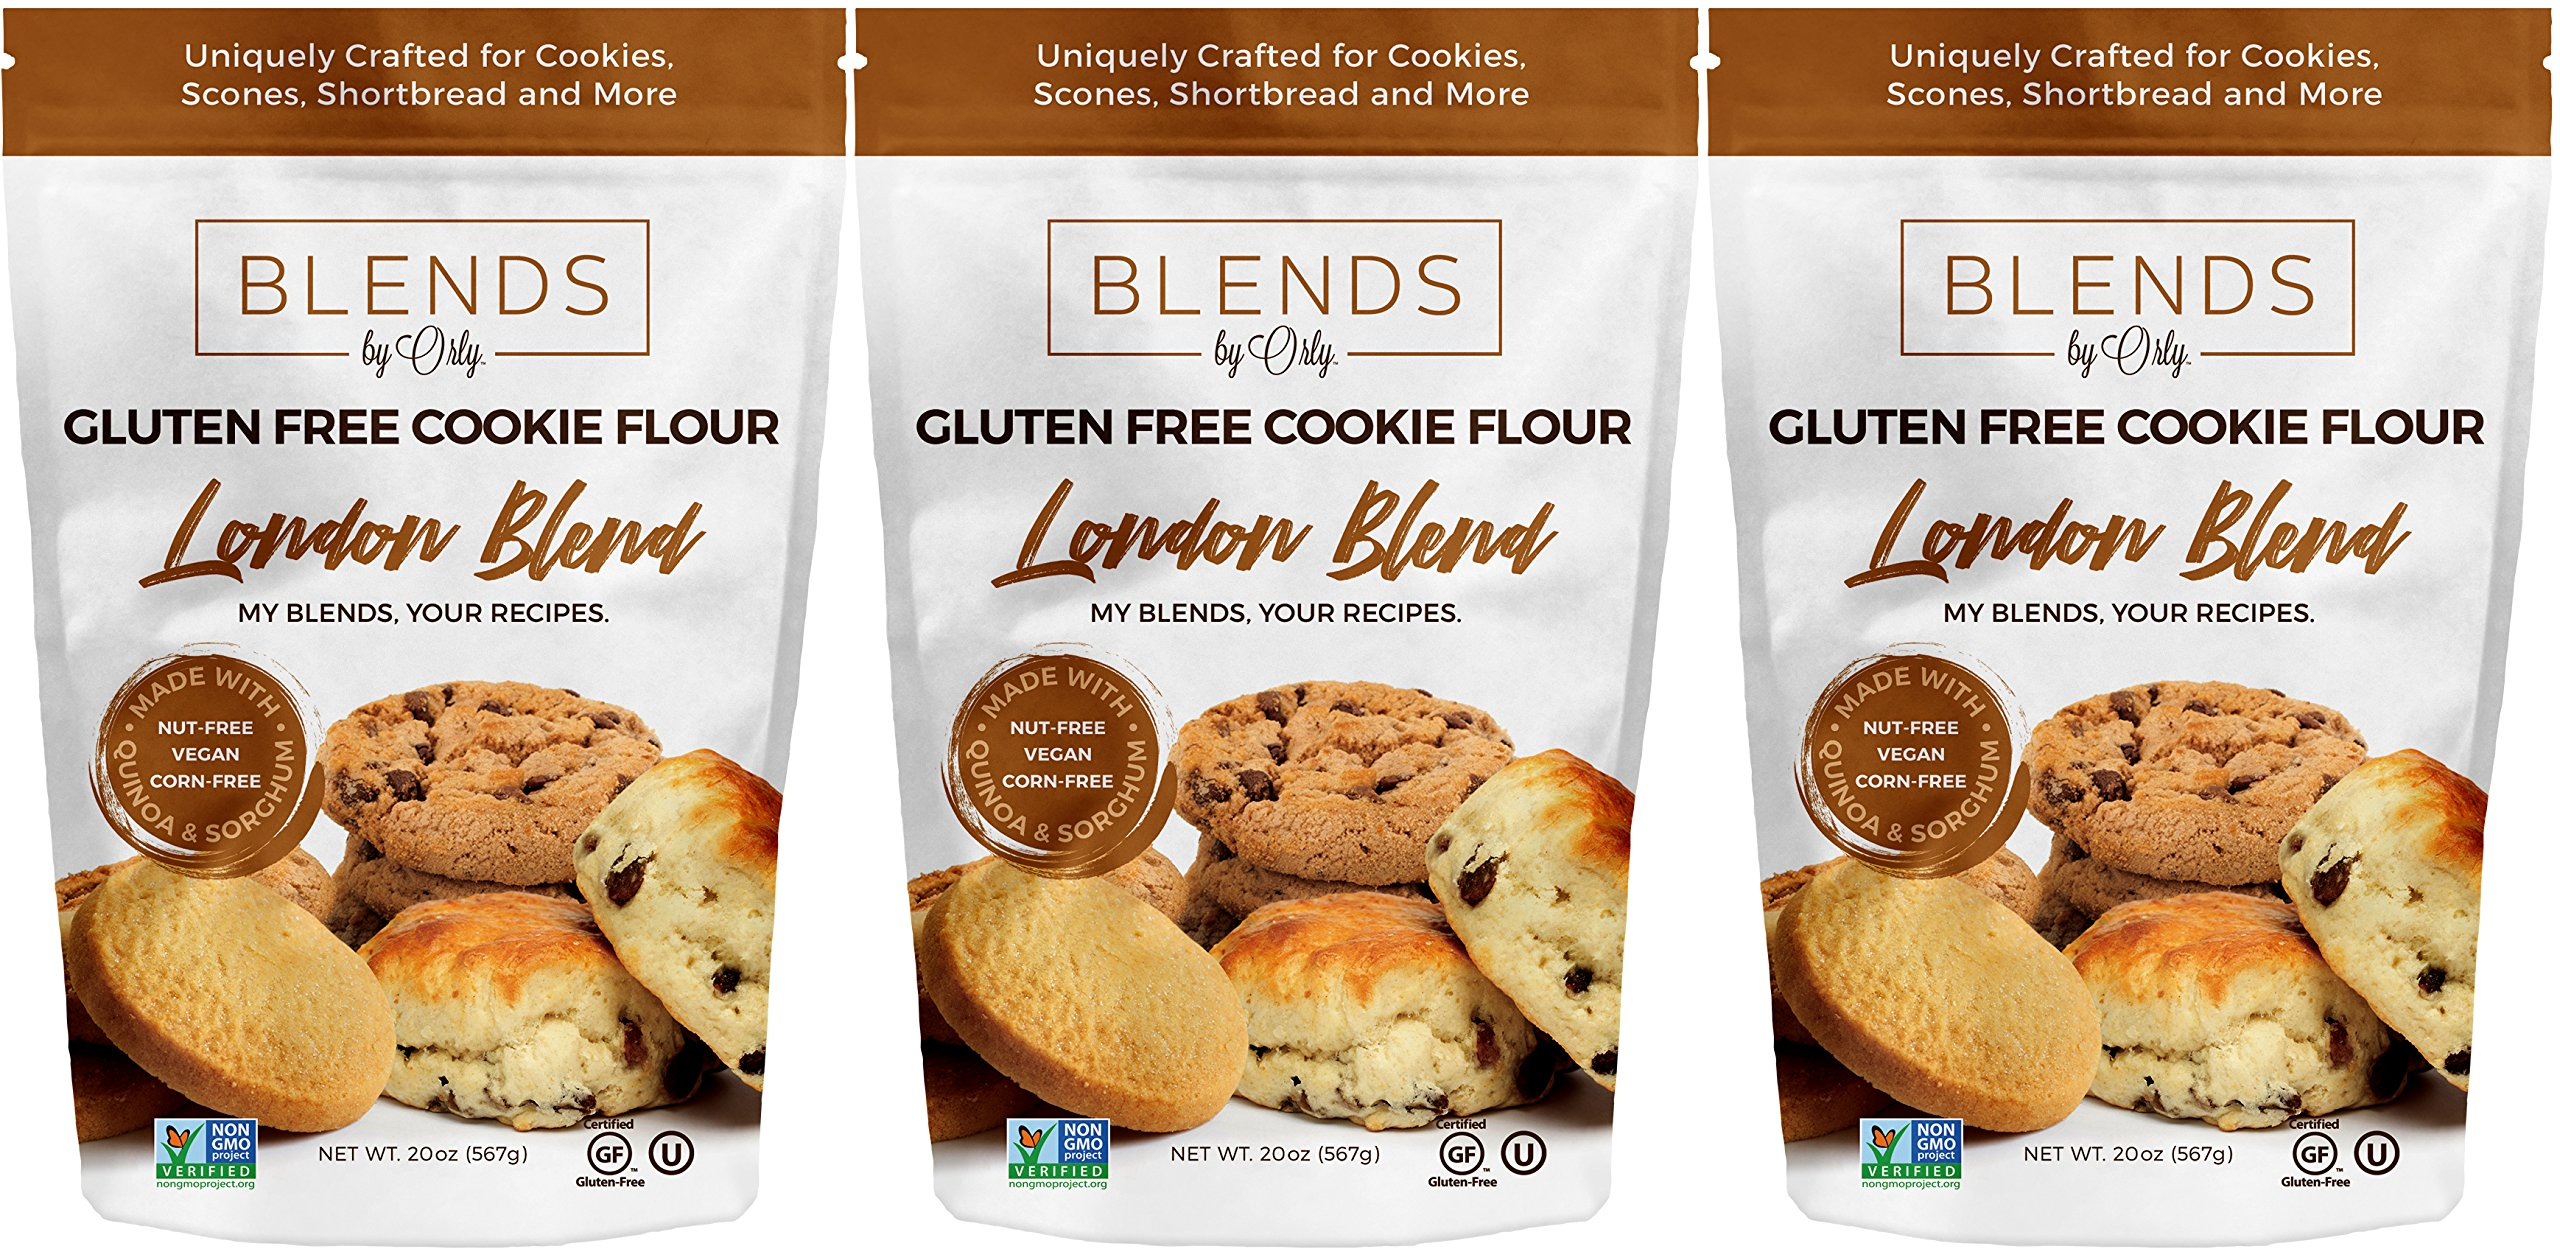 Gluten Free Cookies Flour | Gluten Free Oatmeal Raisin Cookies - Baking Flour for Gluten Free Biscuits, Chocolate Chip Cookies, Butter Cookies & Blondies from London Blends by Orly 60 OZ (Pack of 3) by Blends By Orly